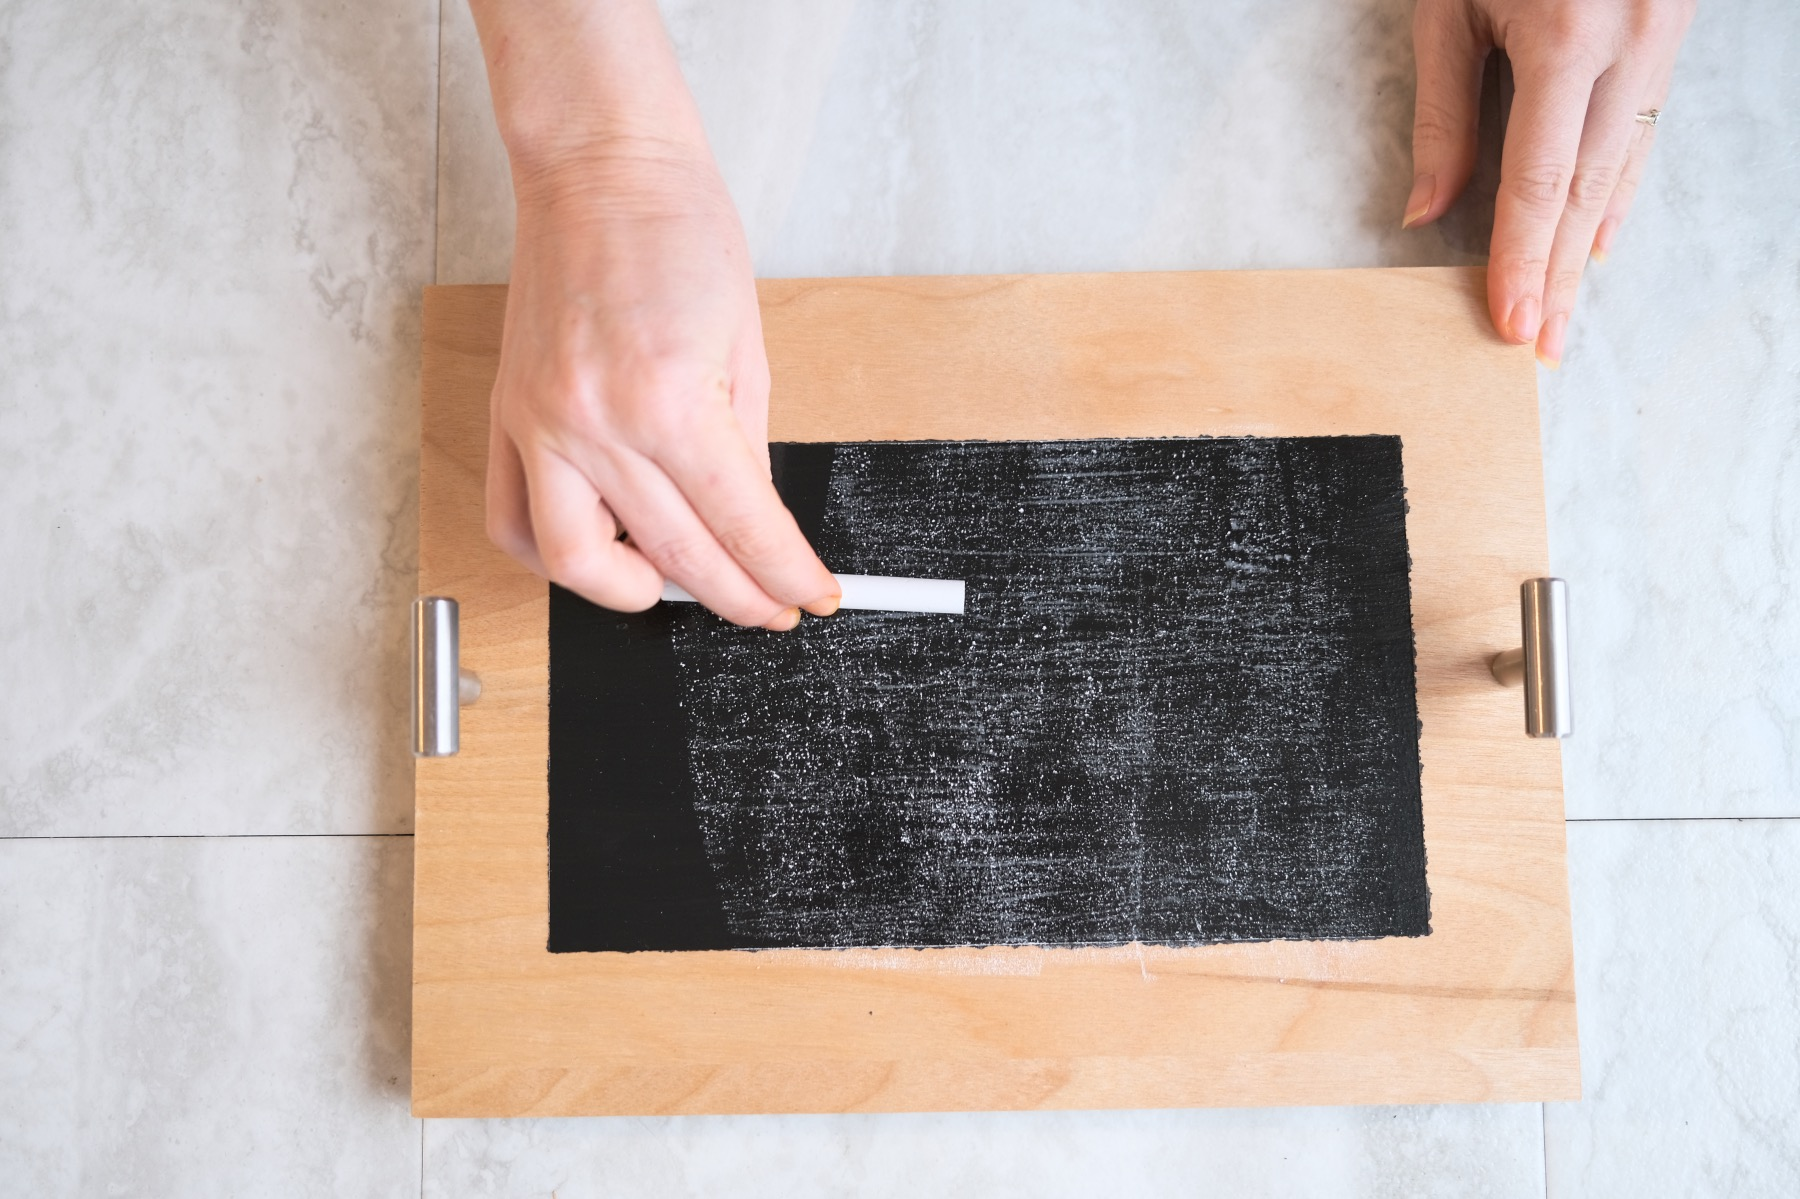 rubbing a chalkboard with dry chalk to season